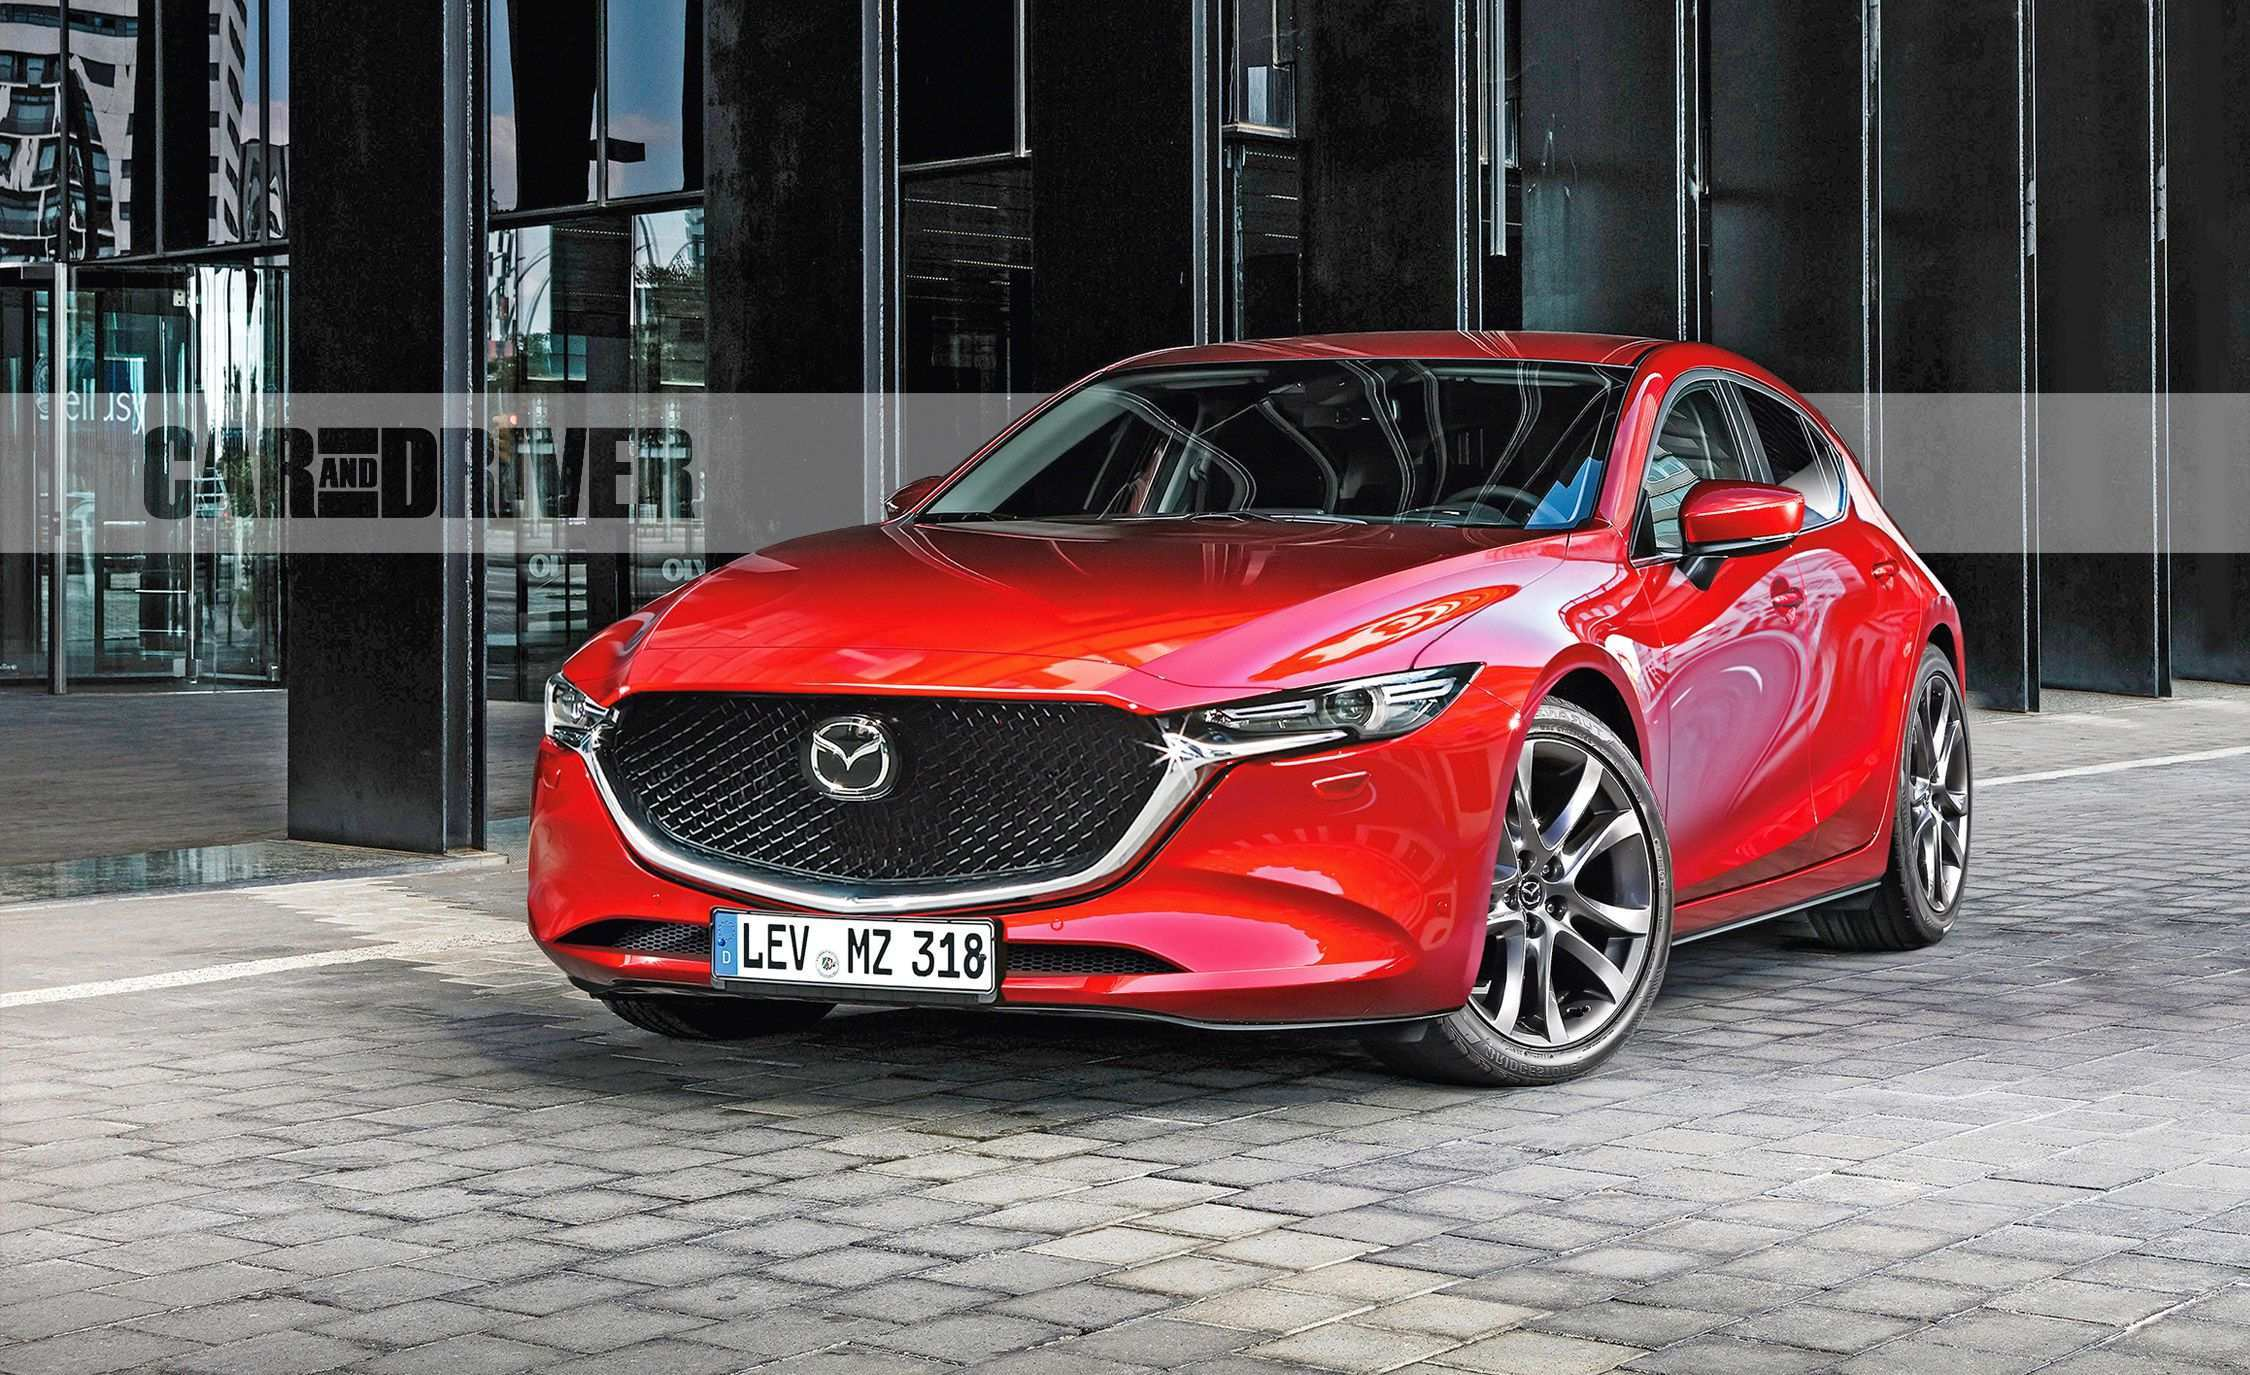 82 Best Review 2020 Mazda 3 Spy Shots Exterior and Interior by 2020 Mazda 3 Spy Shots